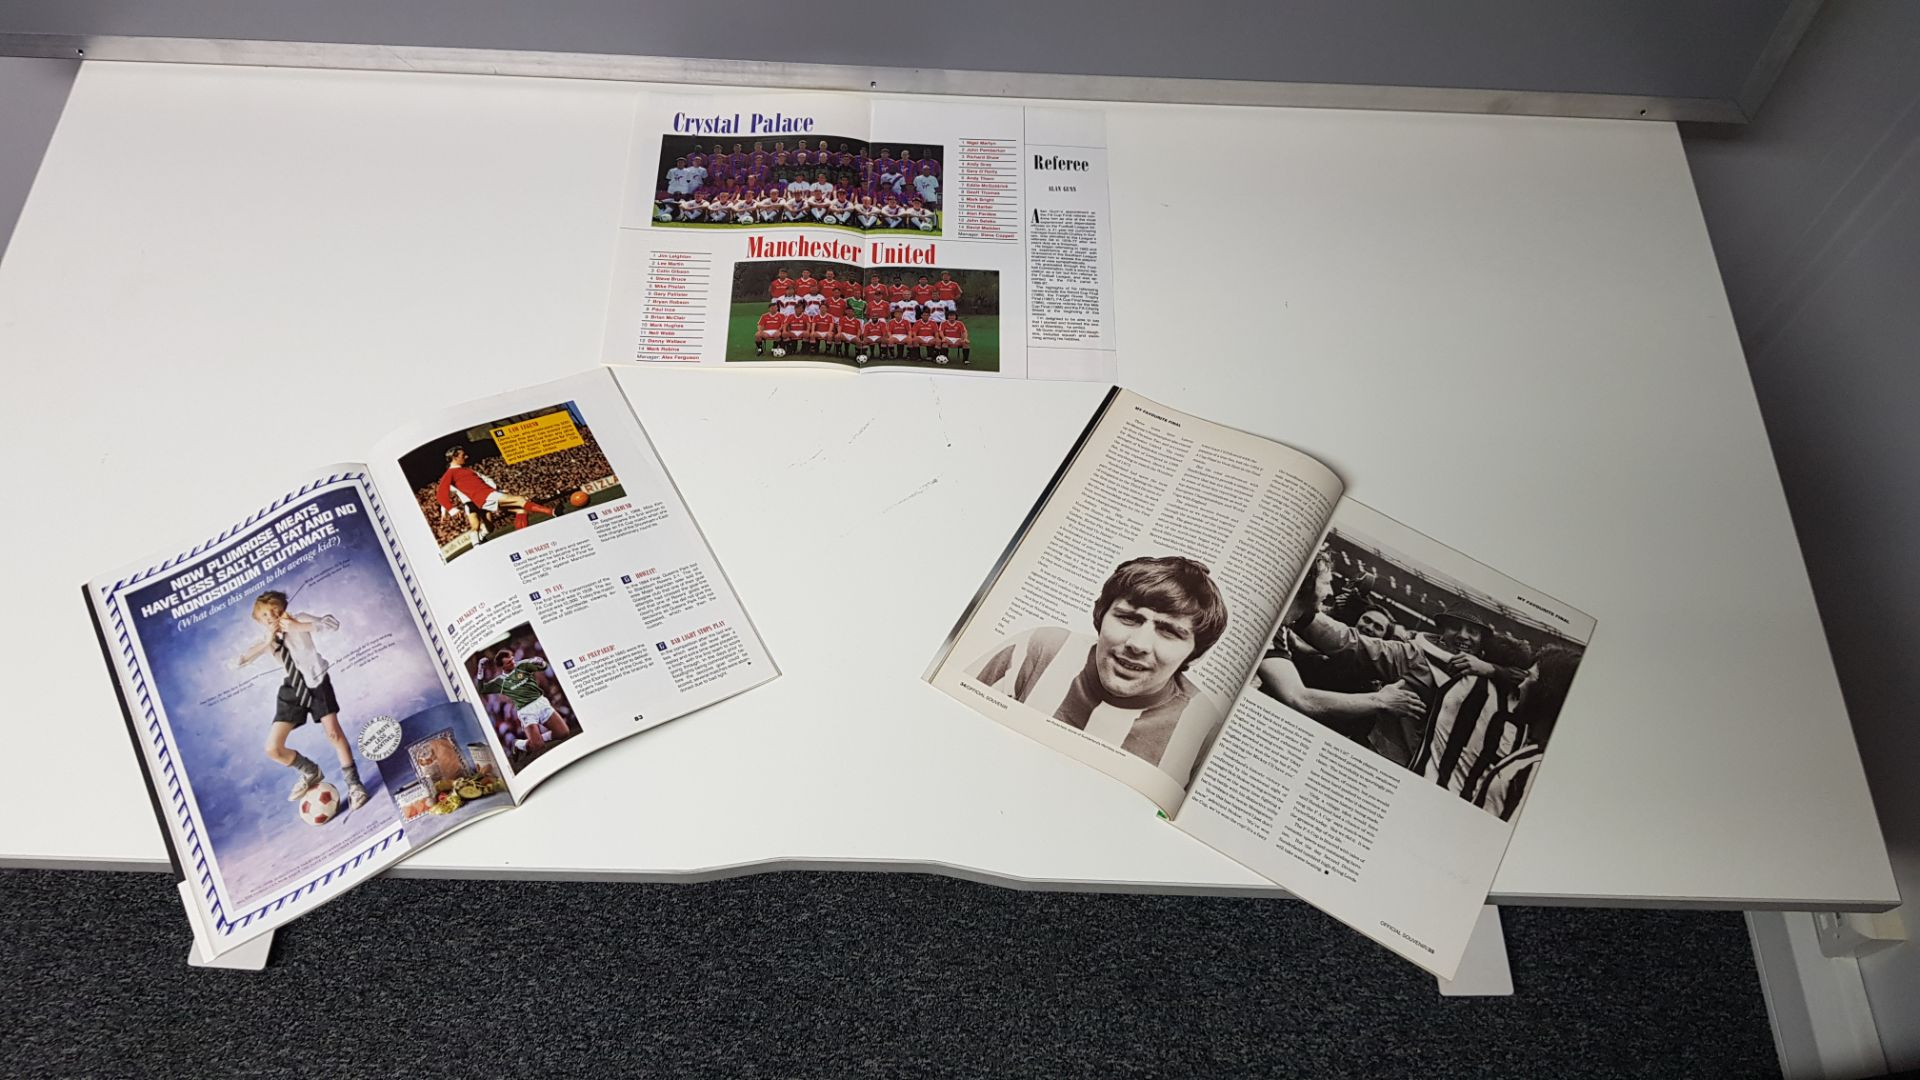 2 X MANCHESTER UNITED VS CRYSTAL PALACE FA CUP 1990 MAGAZINES IN NEAR MINT CONDITION - Image 2 of 2